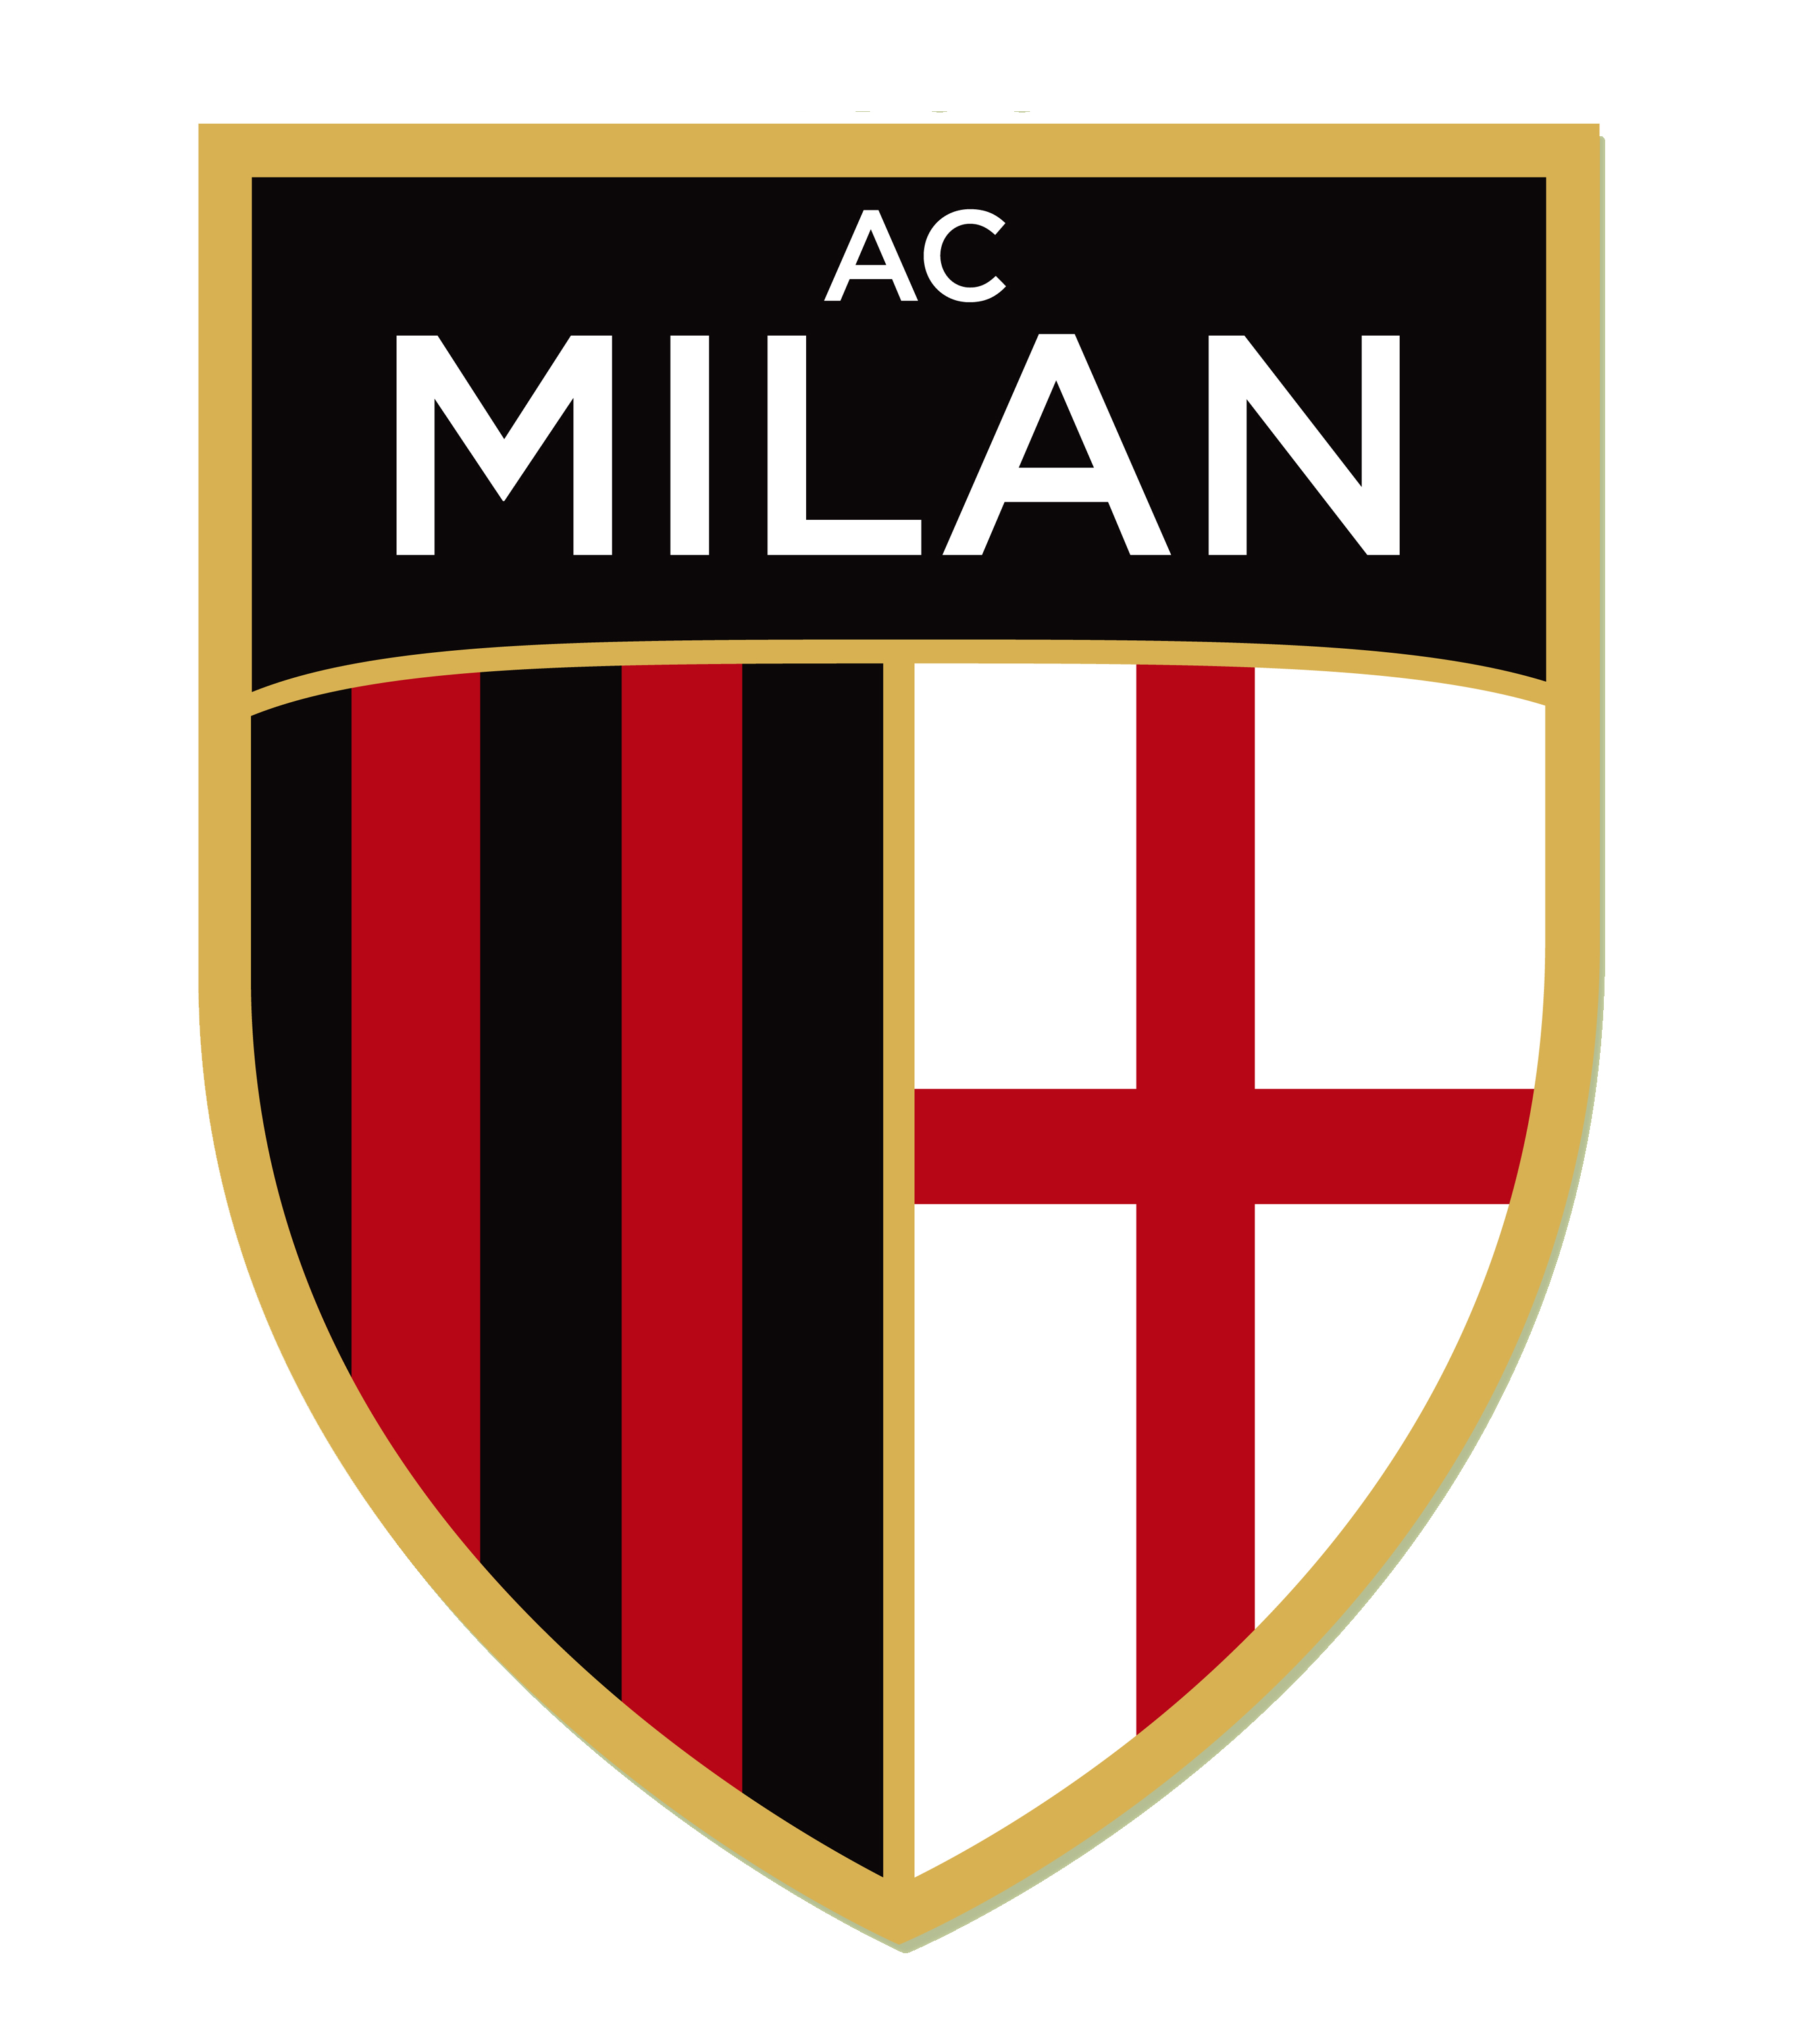 A.C. Milan Logo, A.C. Milan Symbol Meaning, History and Evolution